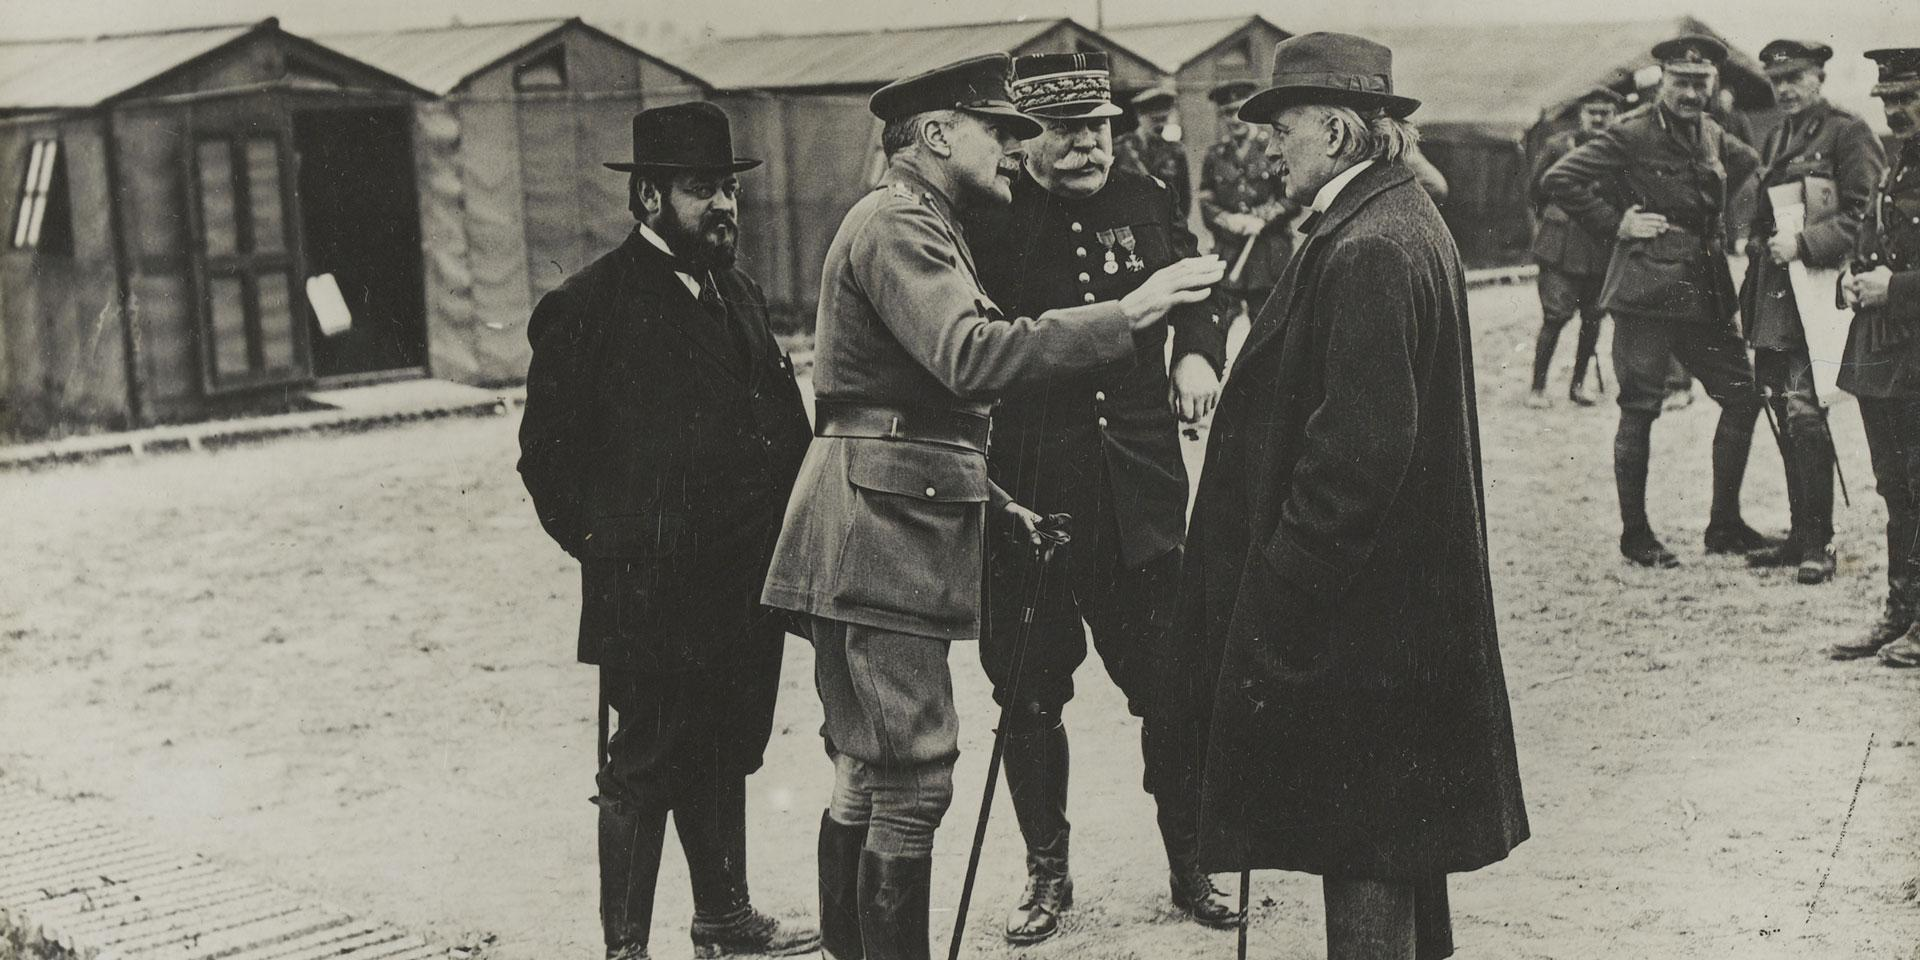 General Sir Douglas Haig confers with Minister of Munitions, David Lloyd George and General Joseph Joffre, 1916